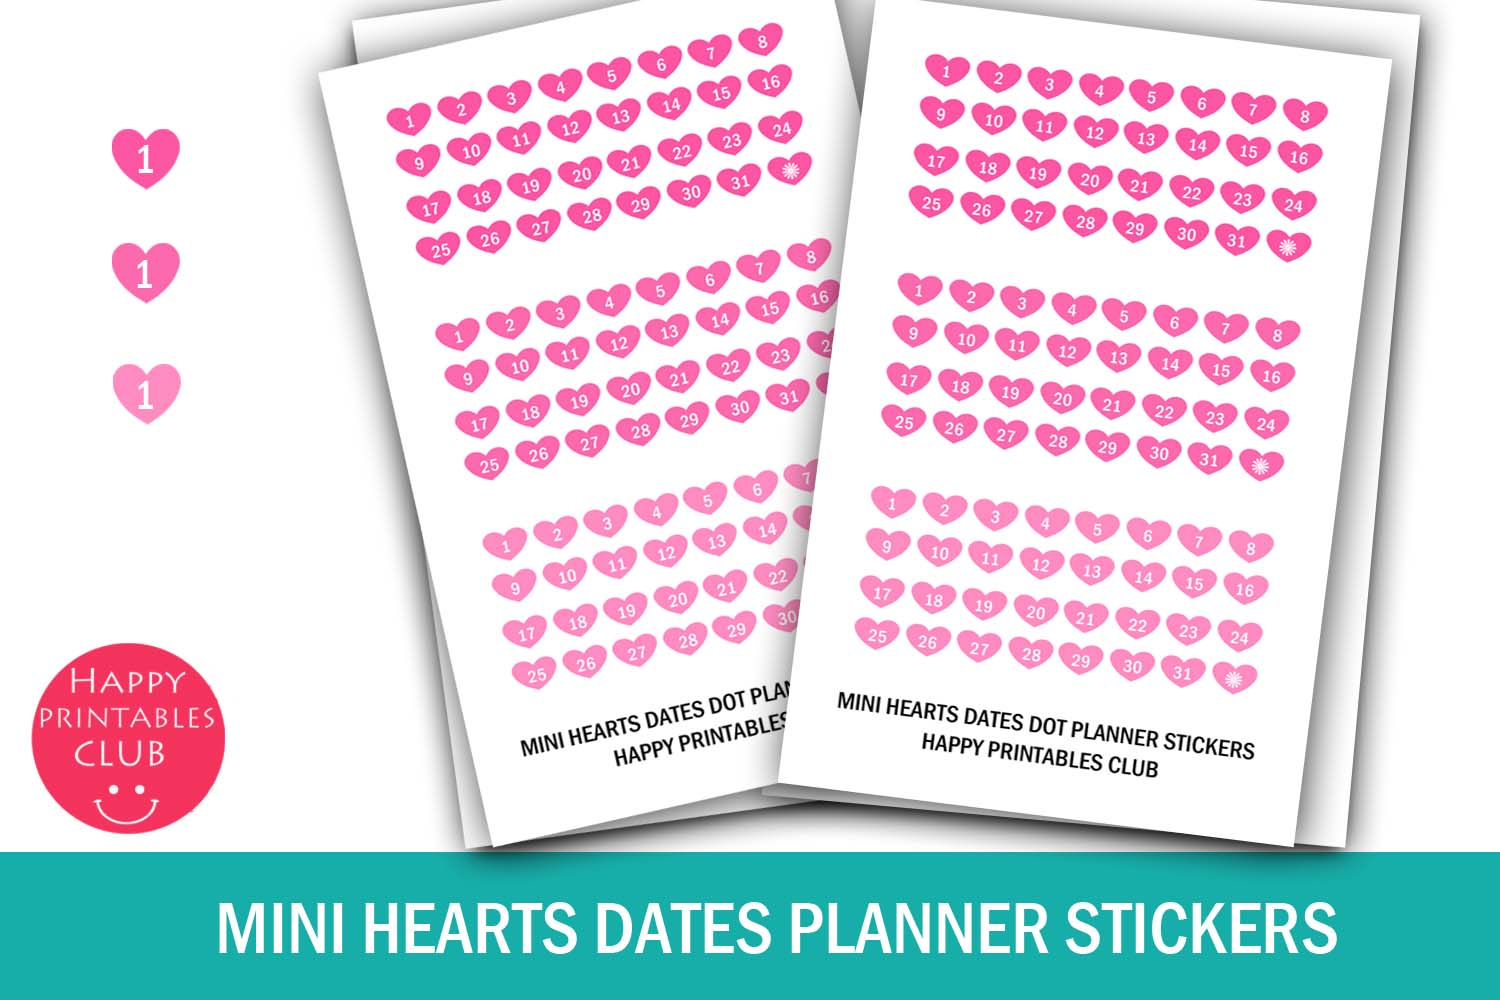 Mini Hearts Date Stickerscalendar Numbers 131 Planners in Calendar Numbers 1-31 Printable